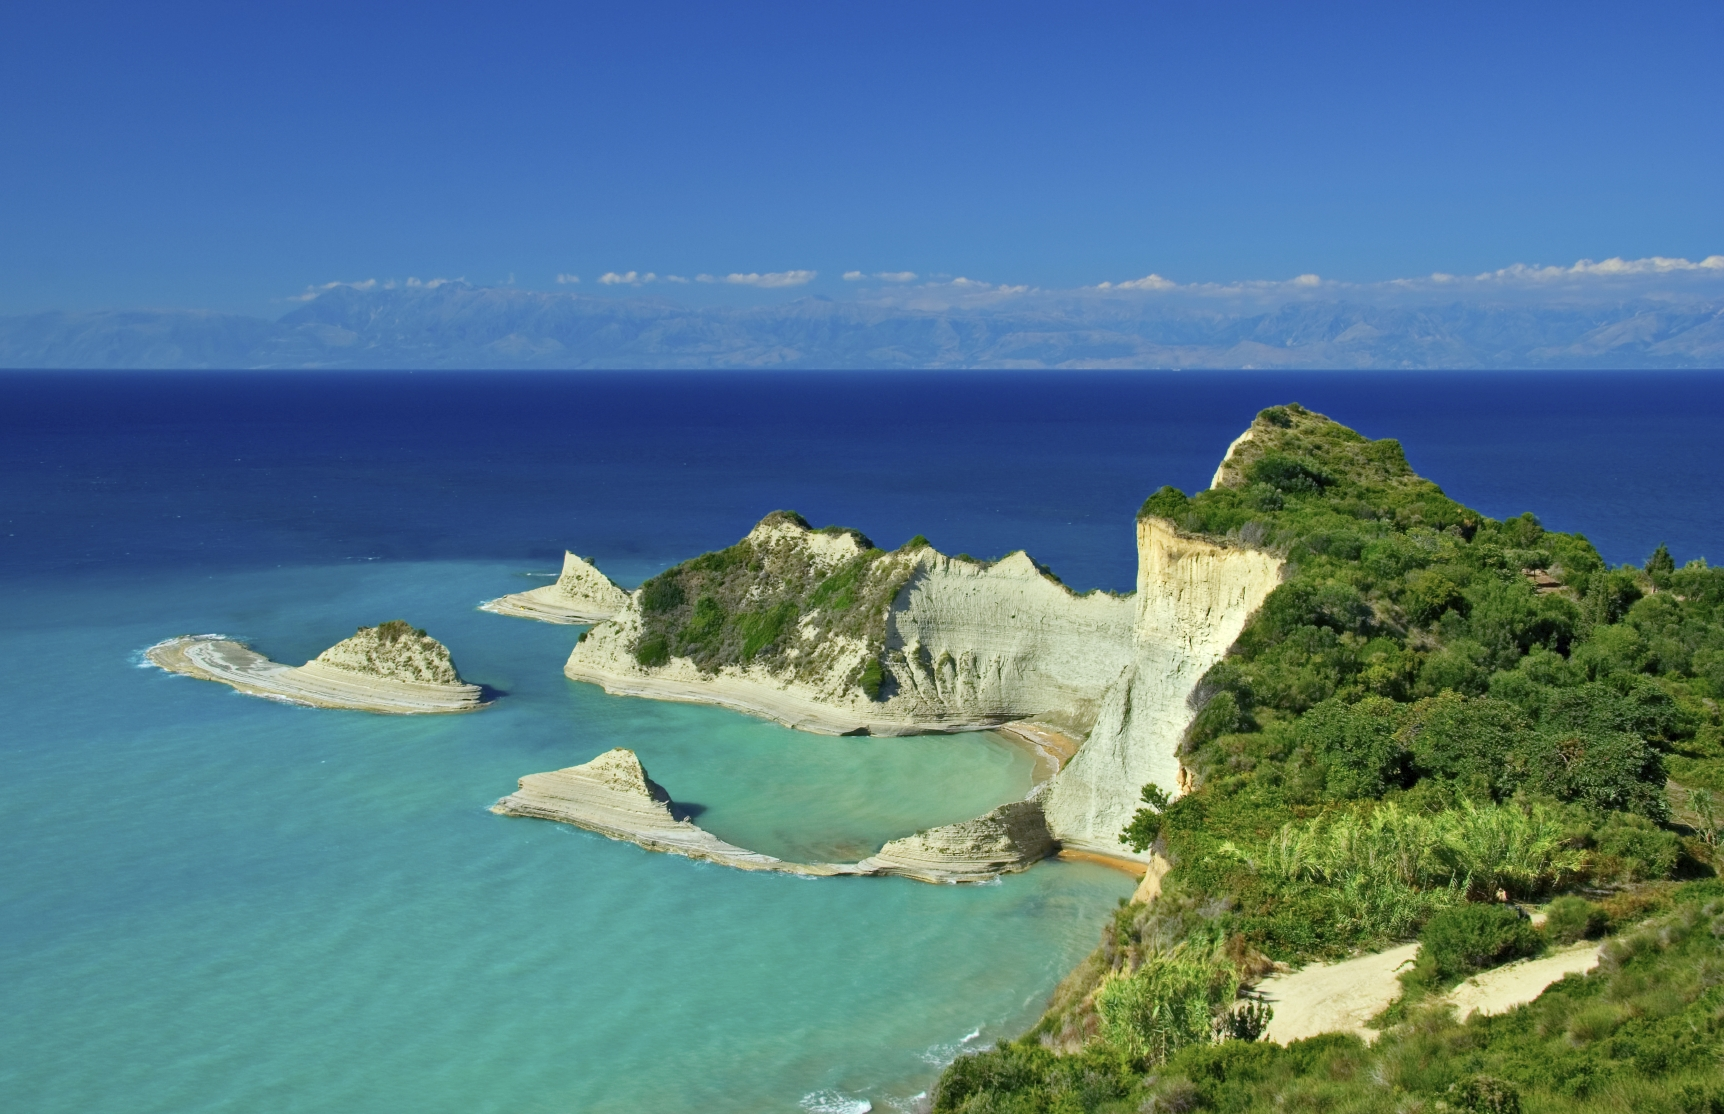 Cape Drastis with nearby islands on Corfu island, Greece